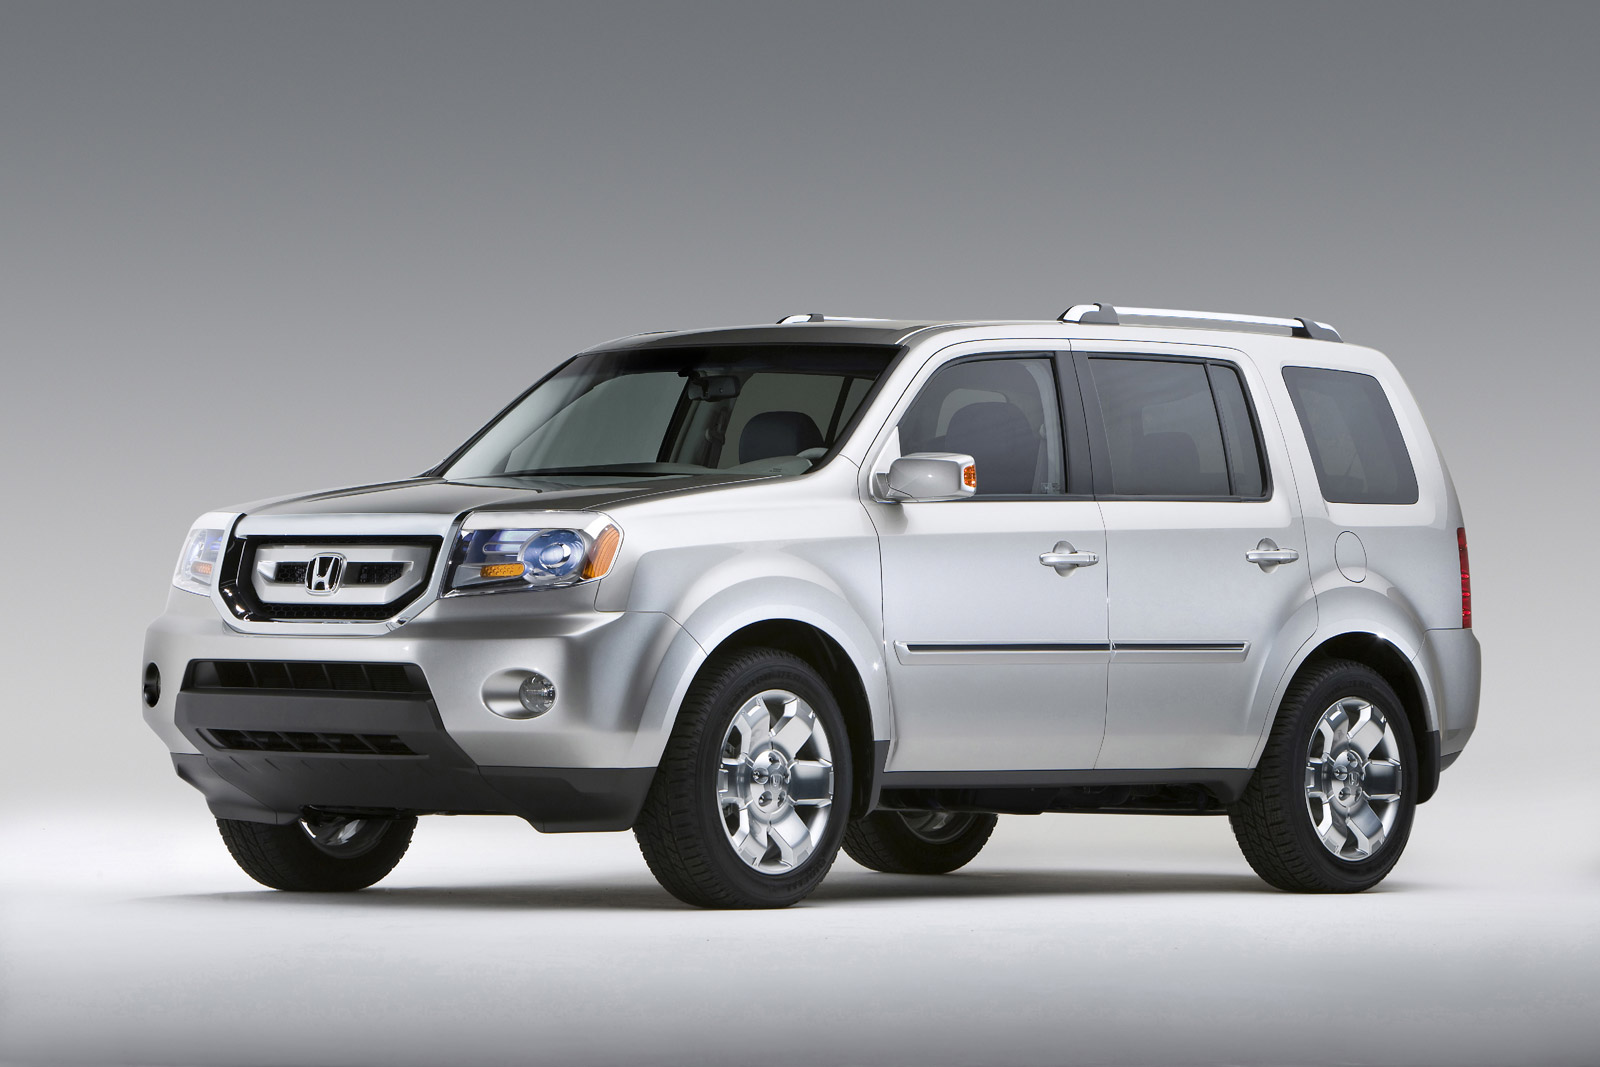 Honda Pilot 2009 Review Amazing Pictures And Images Look At The Car